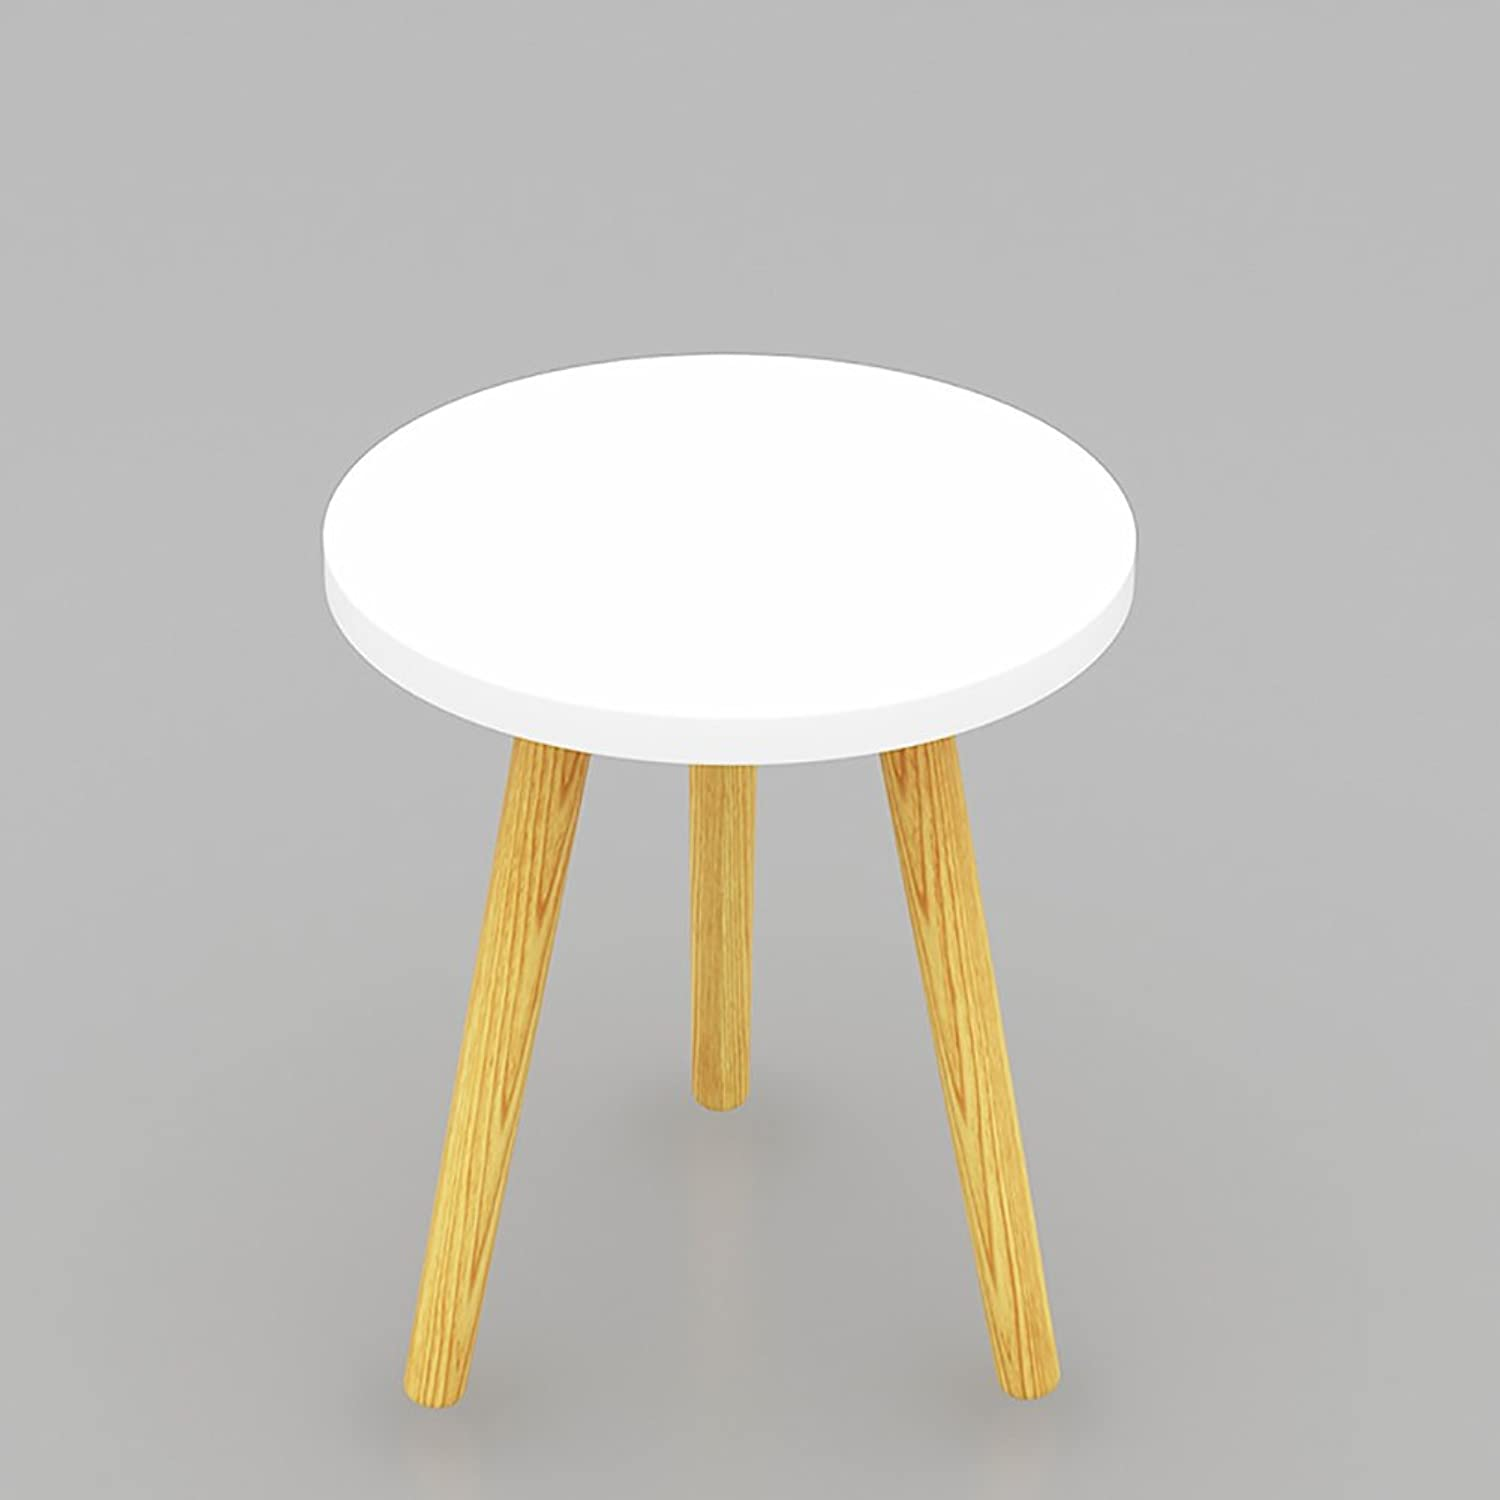 Solid Wood Waterproof Side Table, Round Living Room Sofa Table Coffee Table Bedroom Night Table Vintage Telephone Table-White L40xW40xH42.5cm